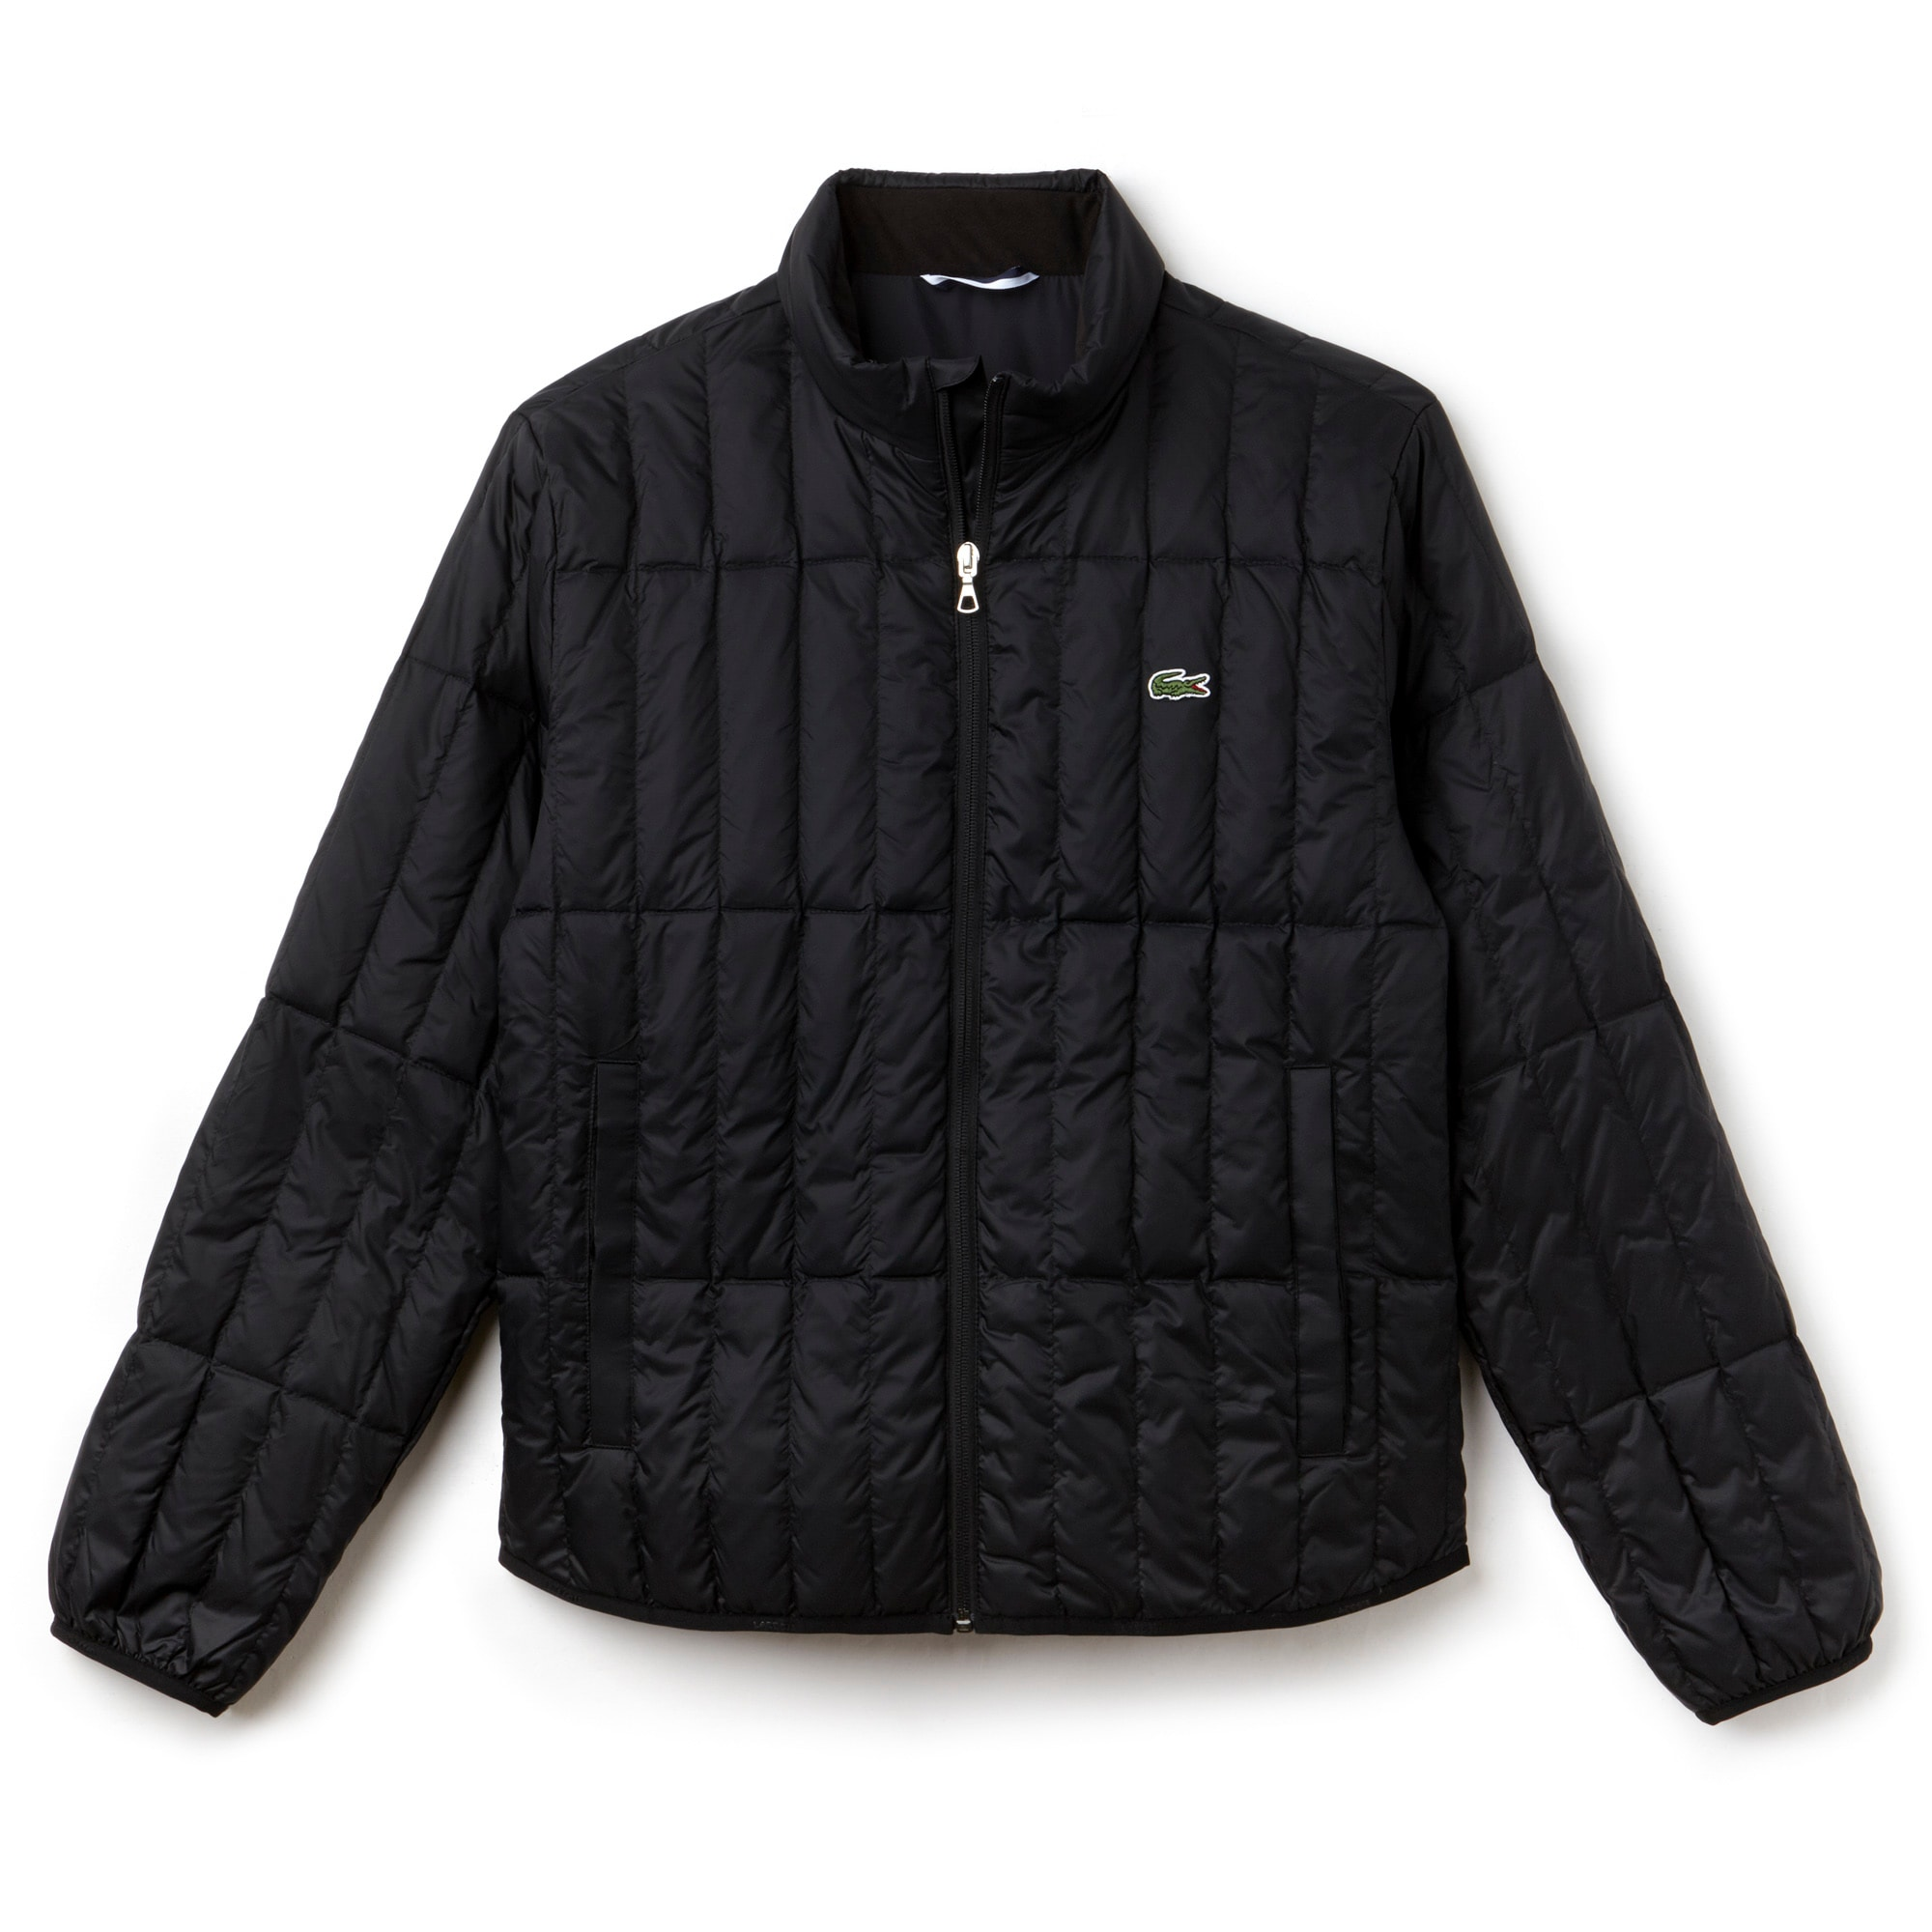 Men's Built-in Hood Quilted Jacket